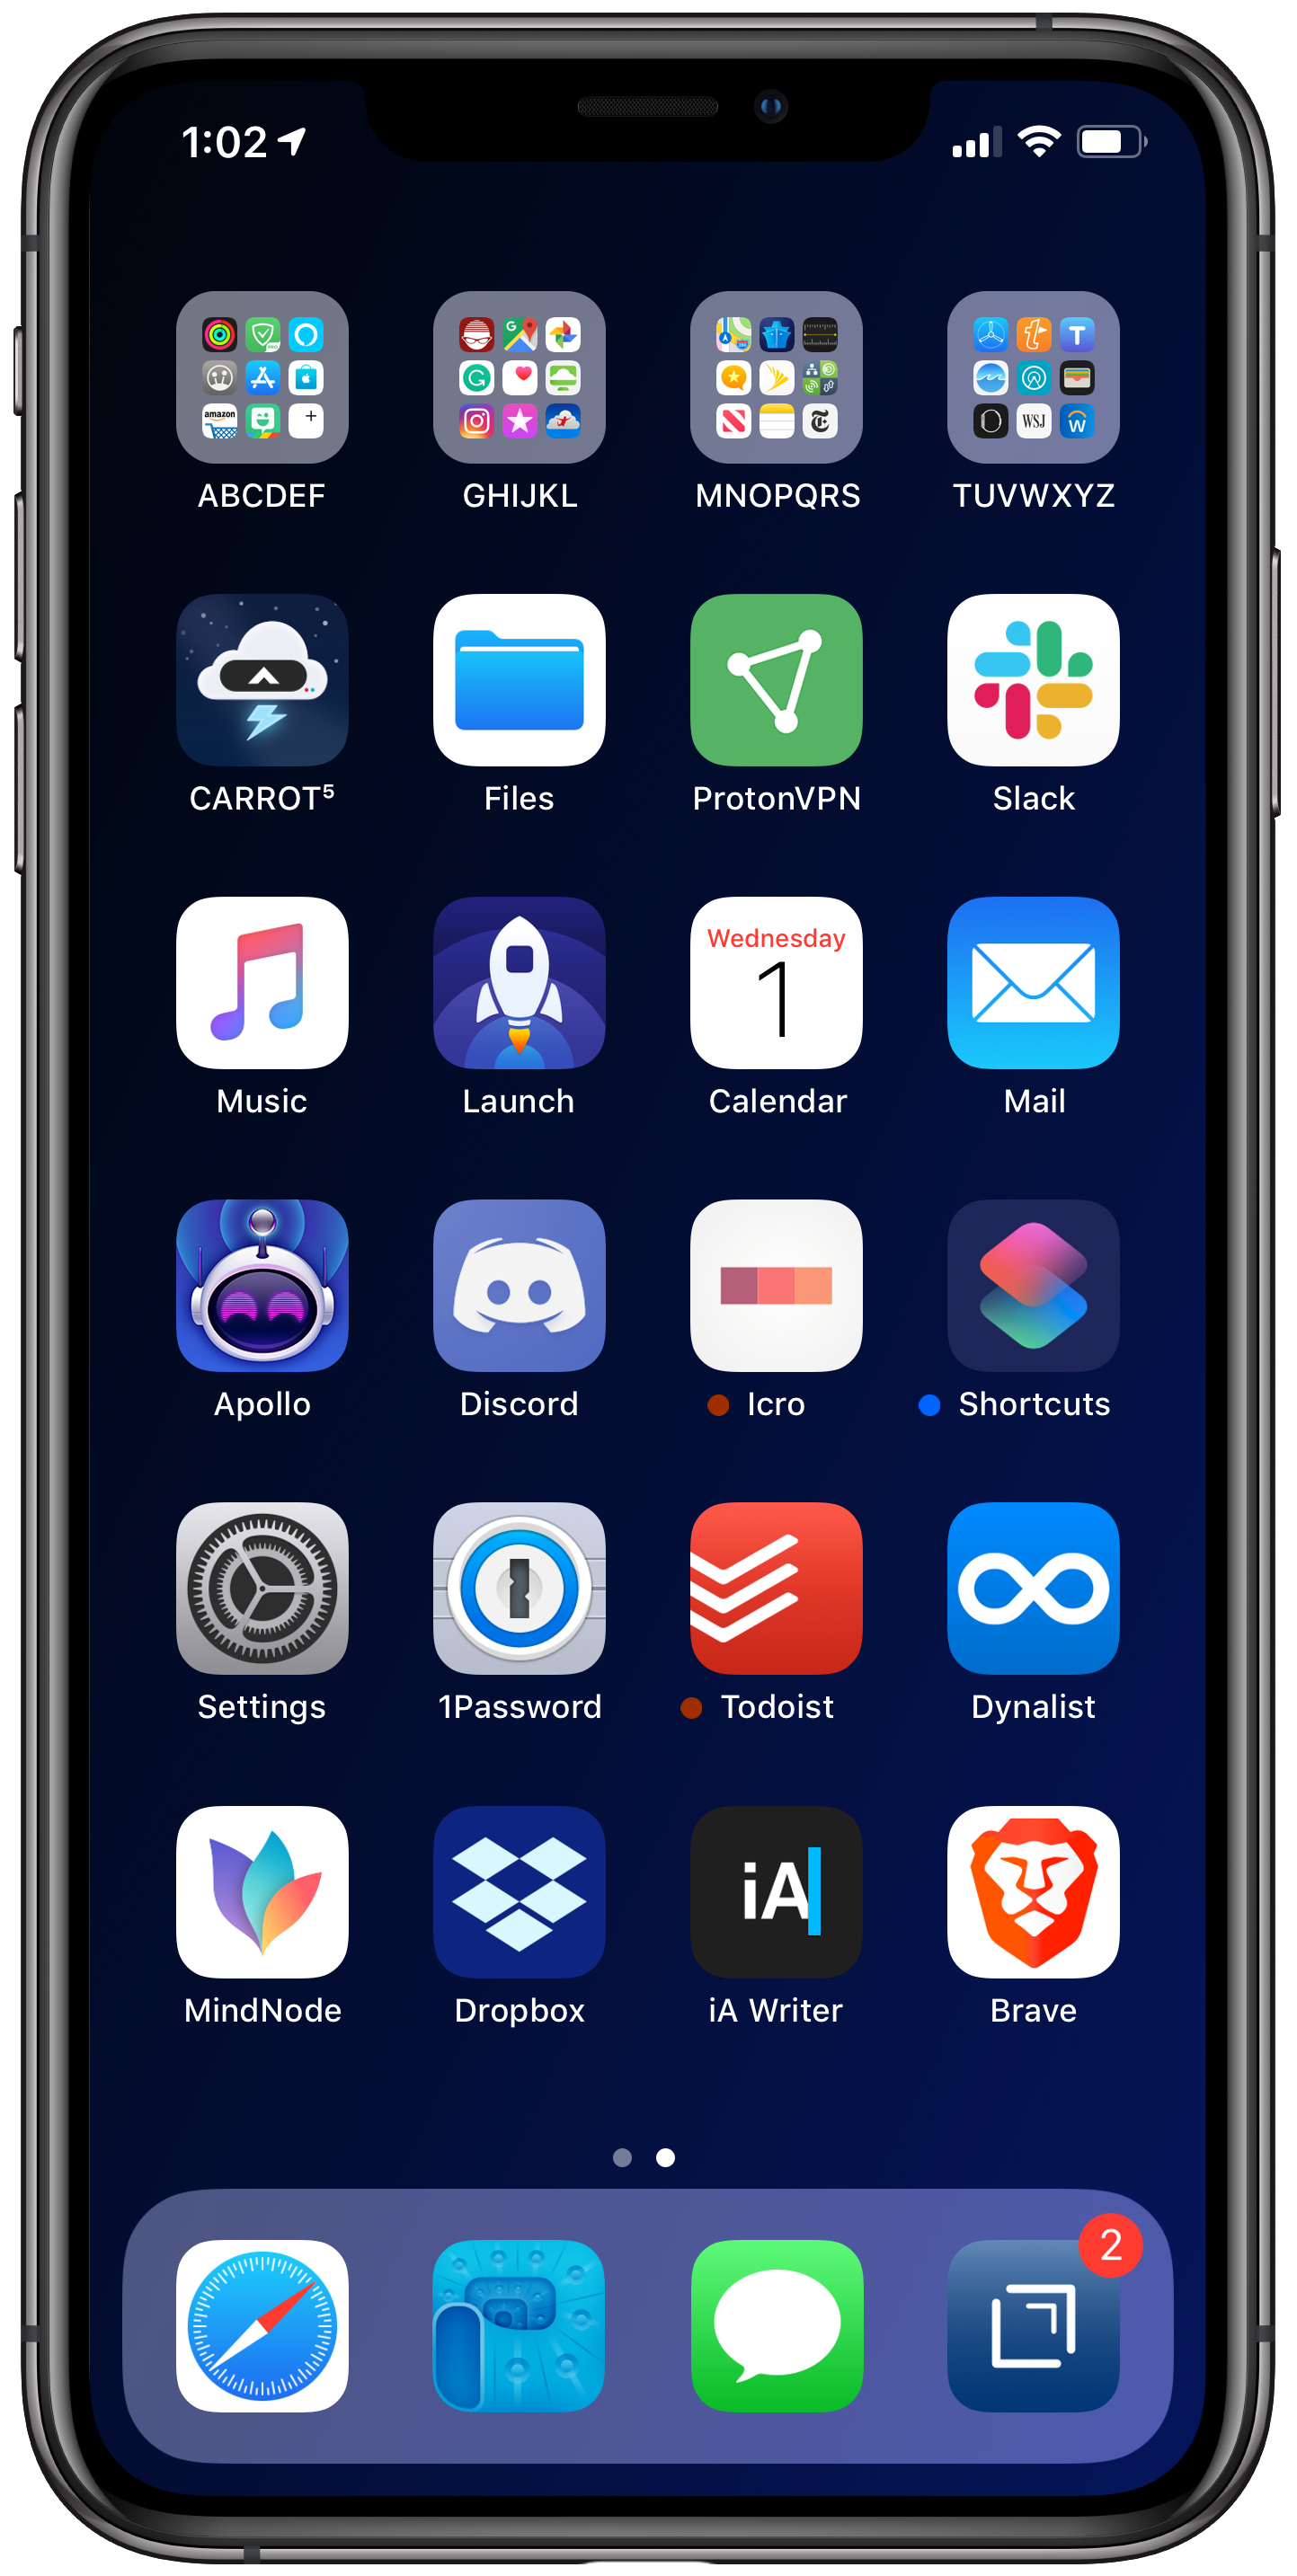 January 2019 iPhone Home Screen